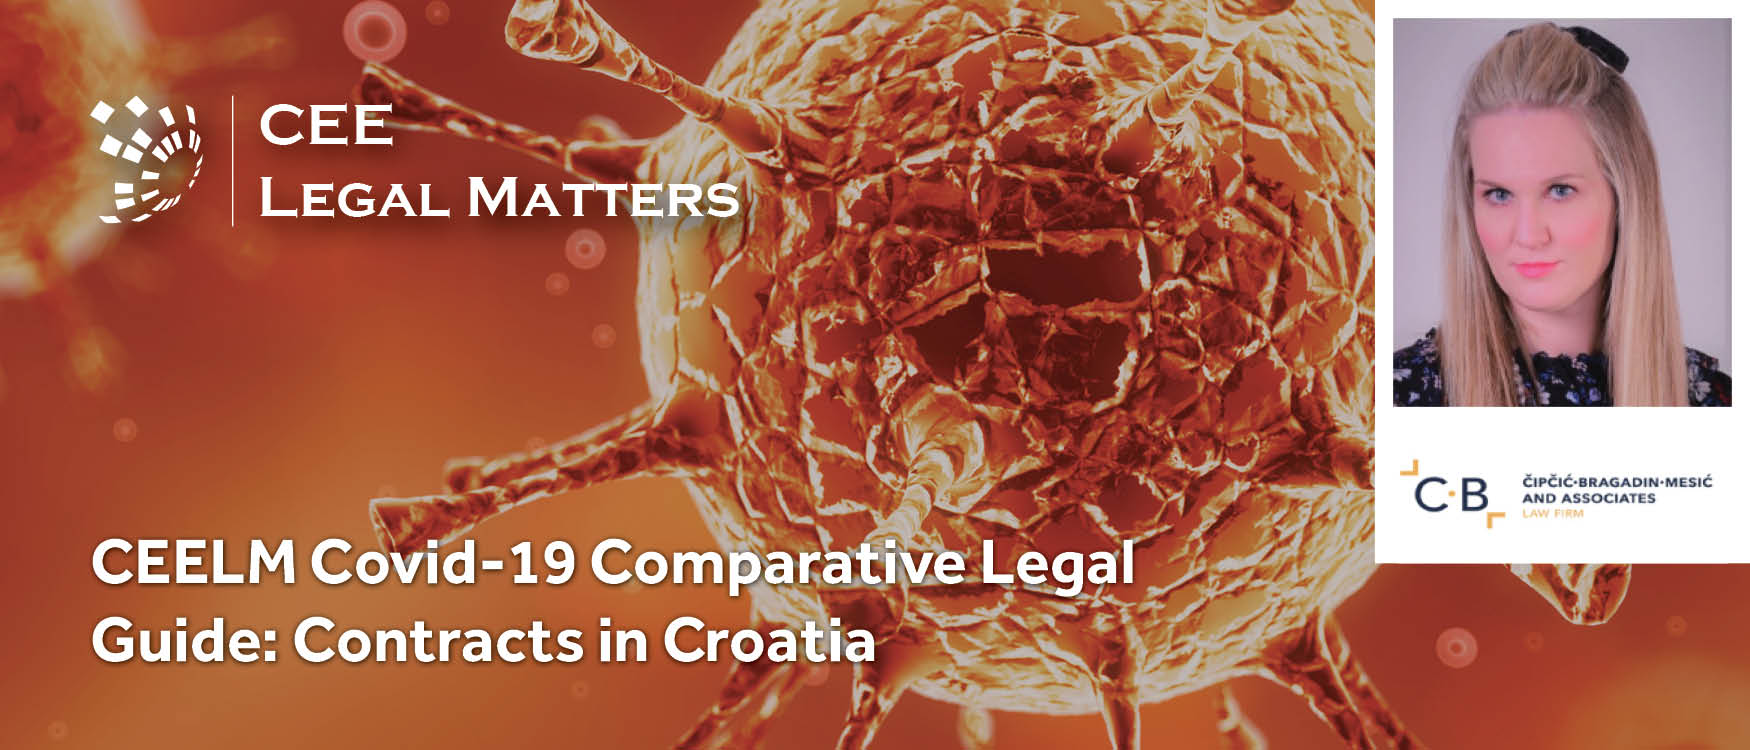 CEELM Covid-19 Comparative Legal Guide: Contracts in Croatia